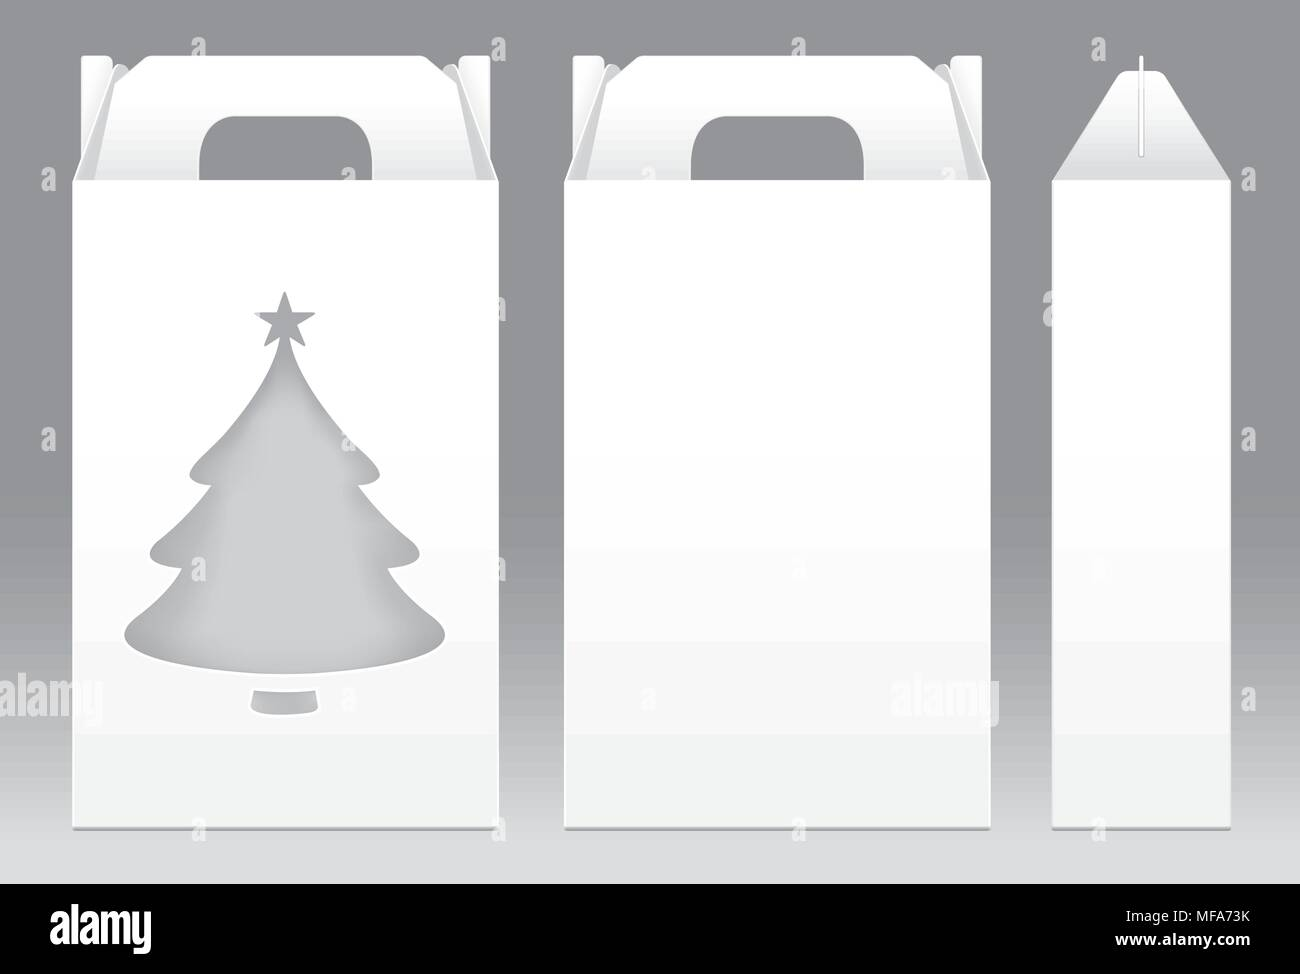 Tall box white window christmas tree shape cut out packaging tall box white window christmas tree shape cut out packaging template blank empty box white template for design product package gift box white box p maxwellsz